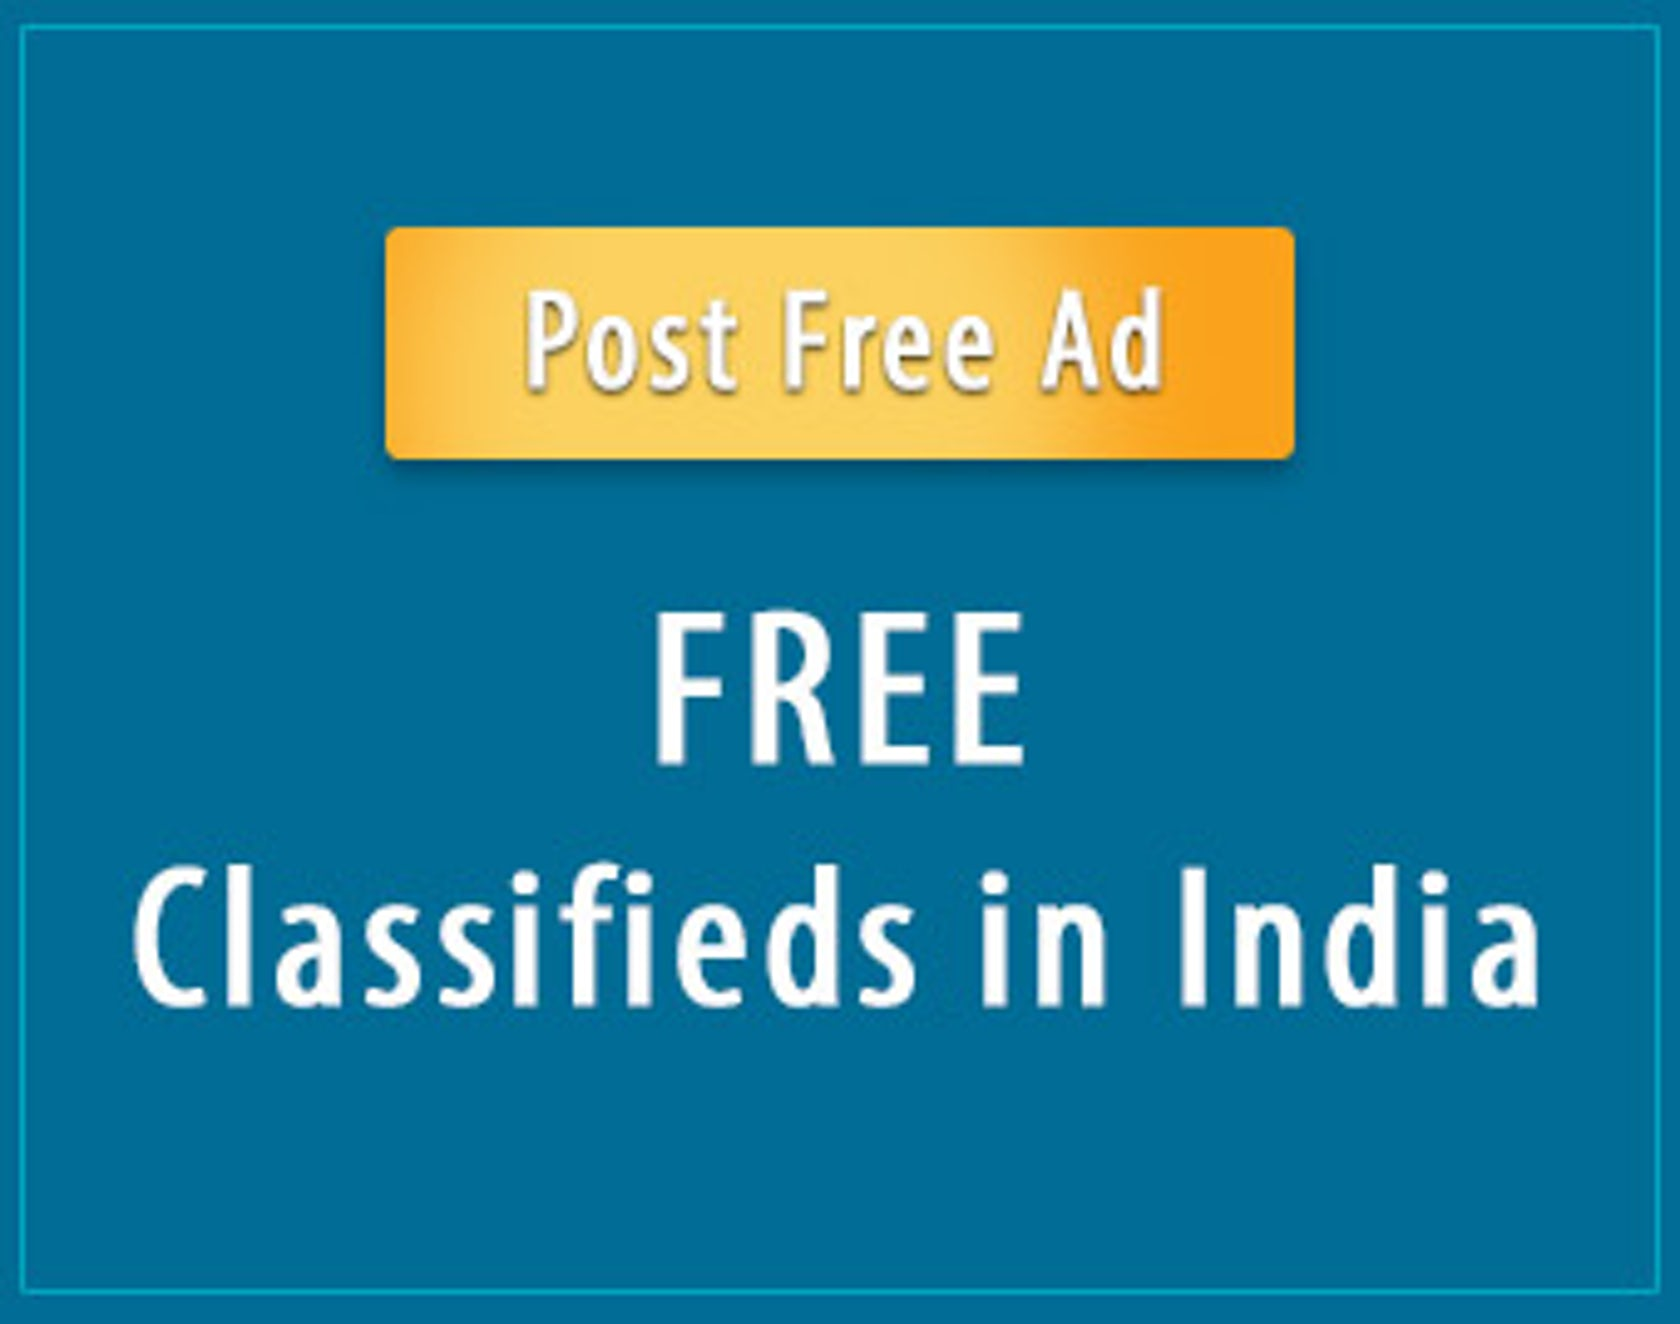 Free personals classified advertising long